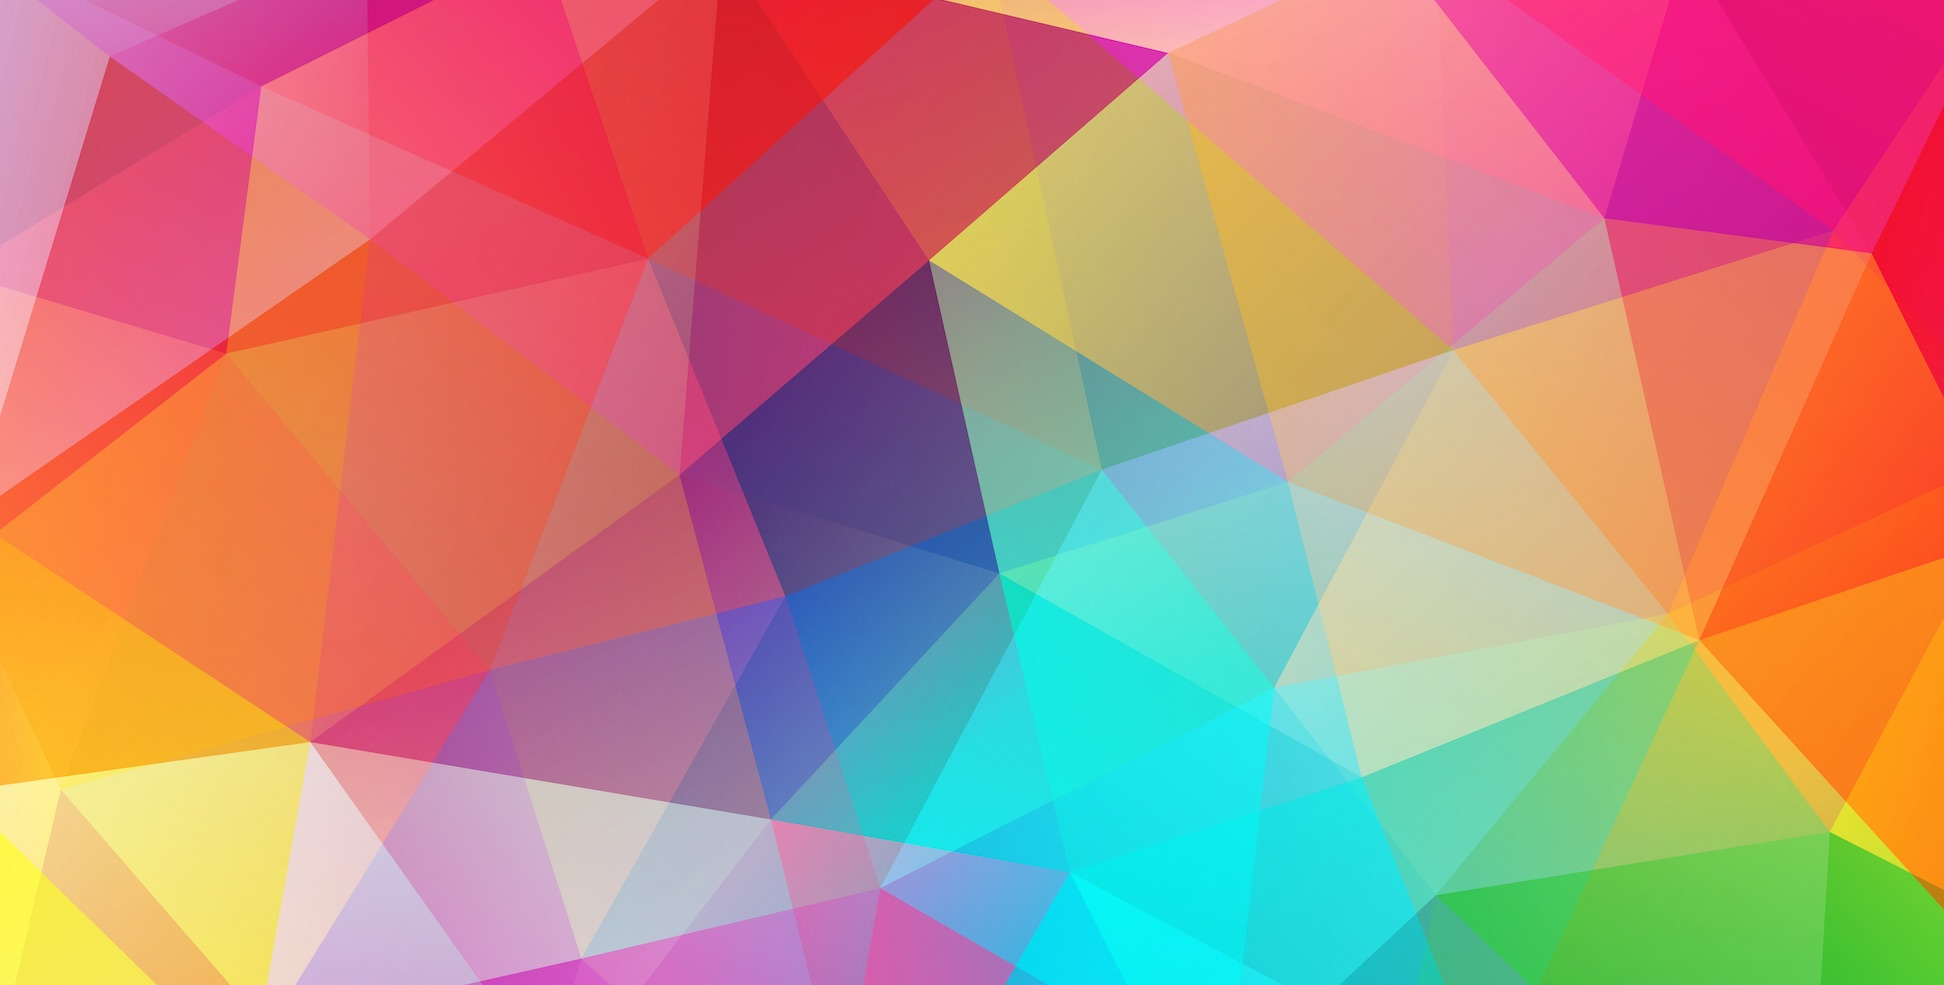 Pink Complimentary Color Web Design Color Theory How To Create The Right Emotions